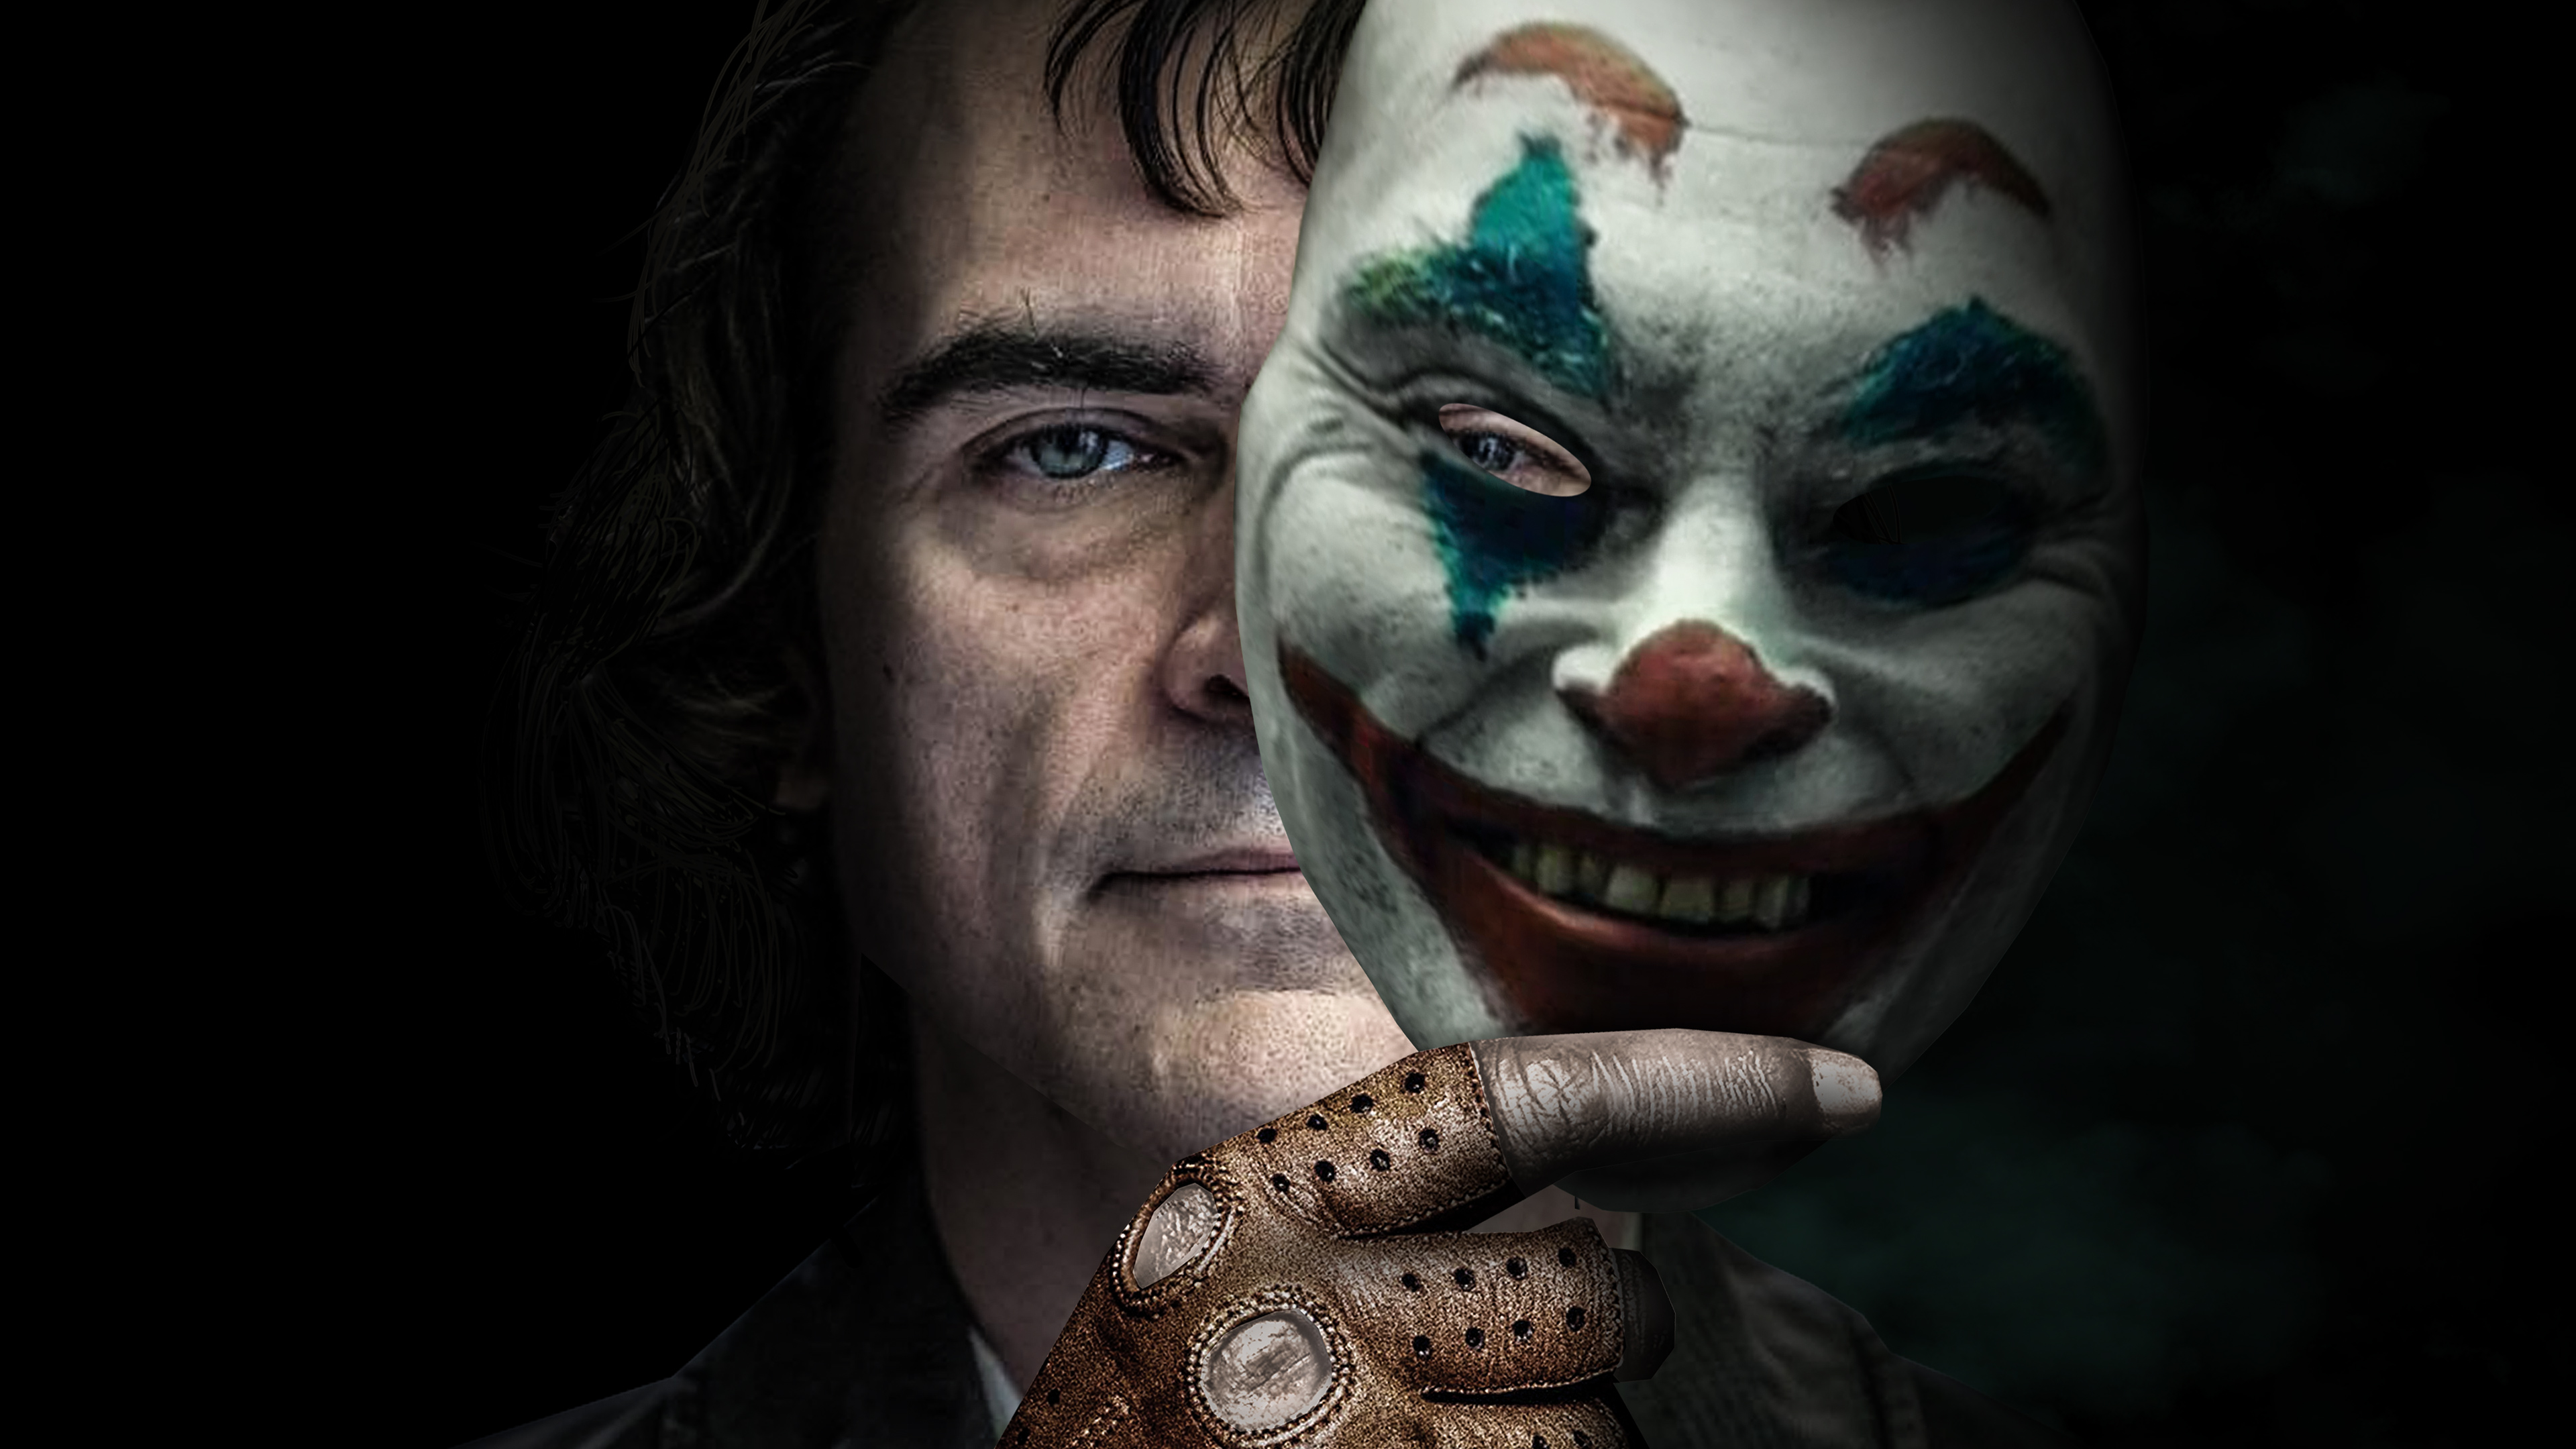 Joker 2019 Movie 4k, HD Movies, 4k Wallpapers, Image